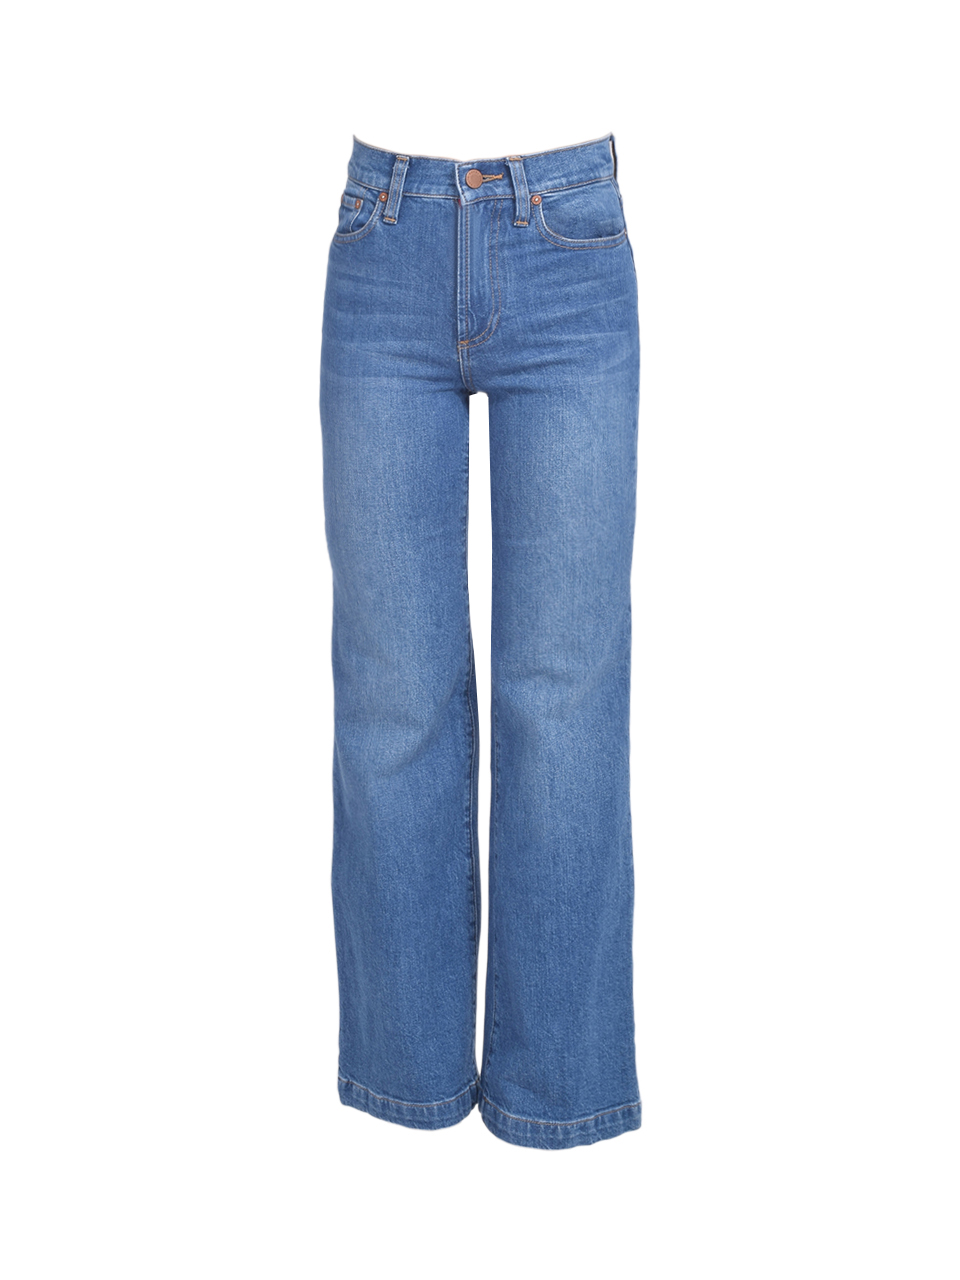 Alice + Olivia Liza Mid Rise Straight Ankle Jean in Best Intentions Product Shot